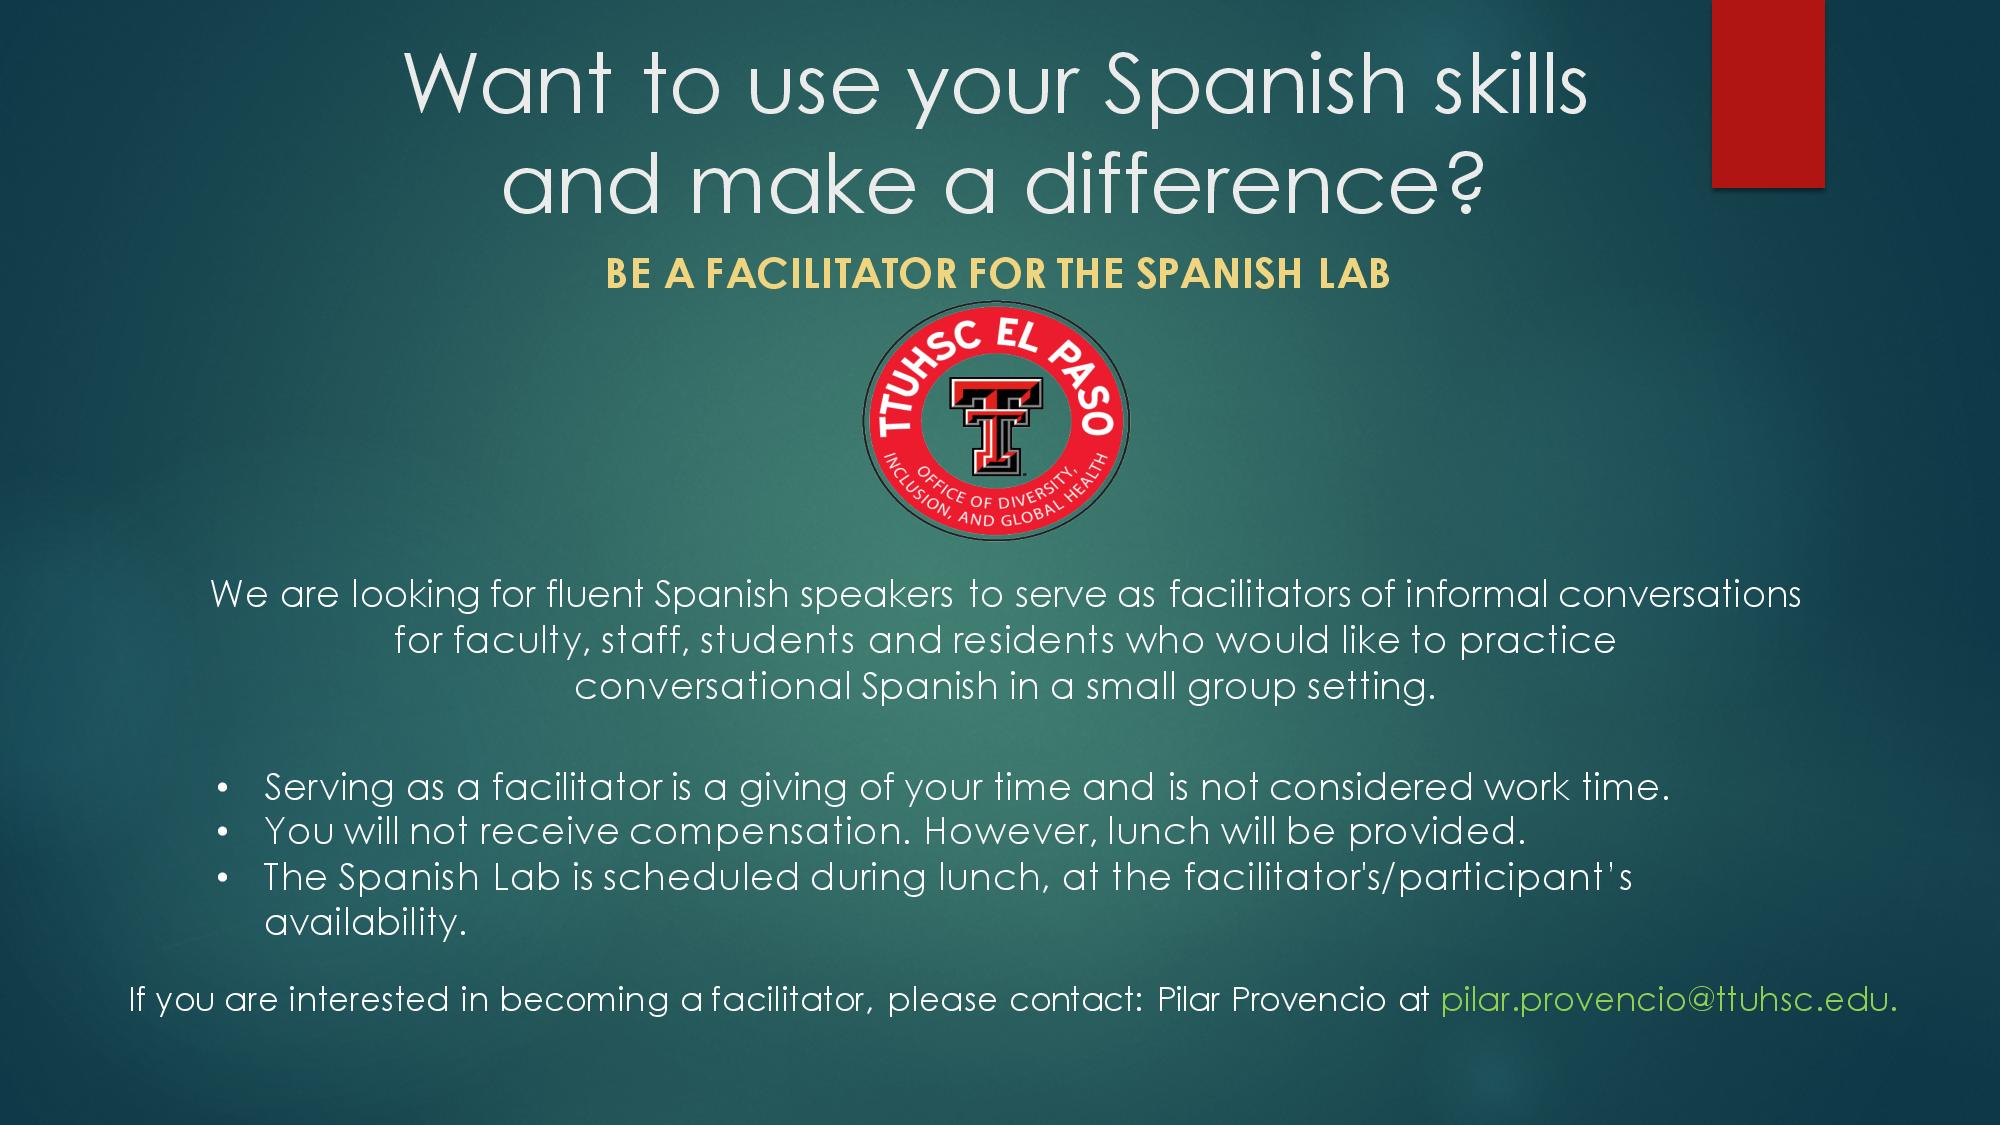 Be a Facilitator for the Spanish Lab